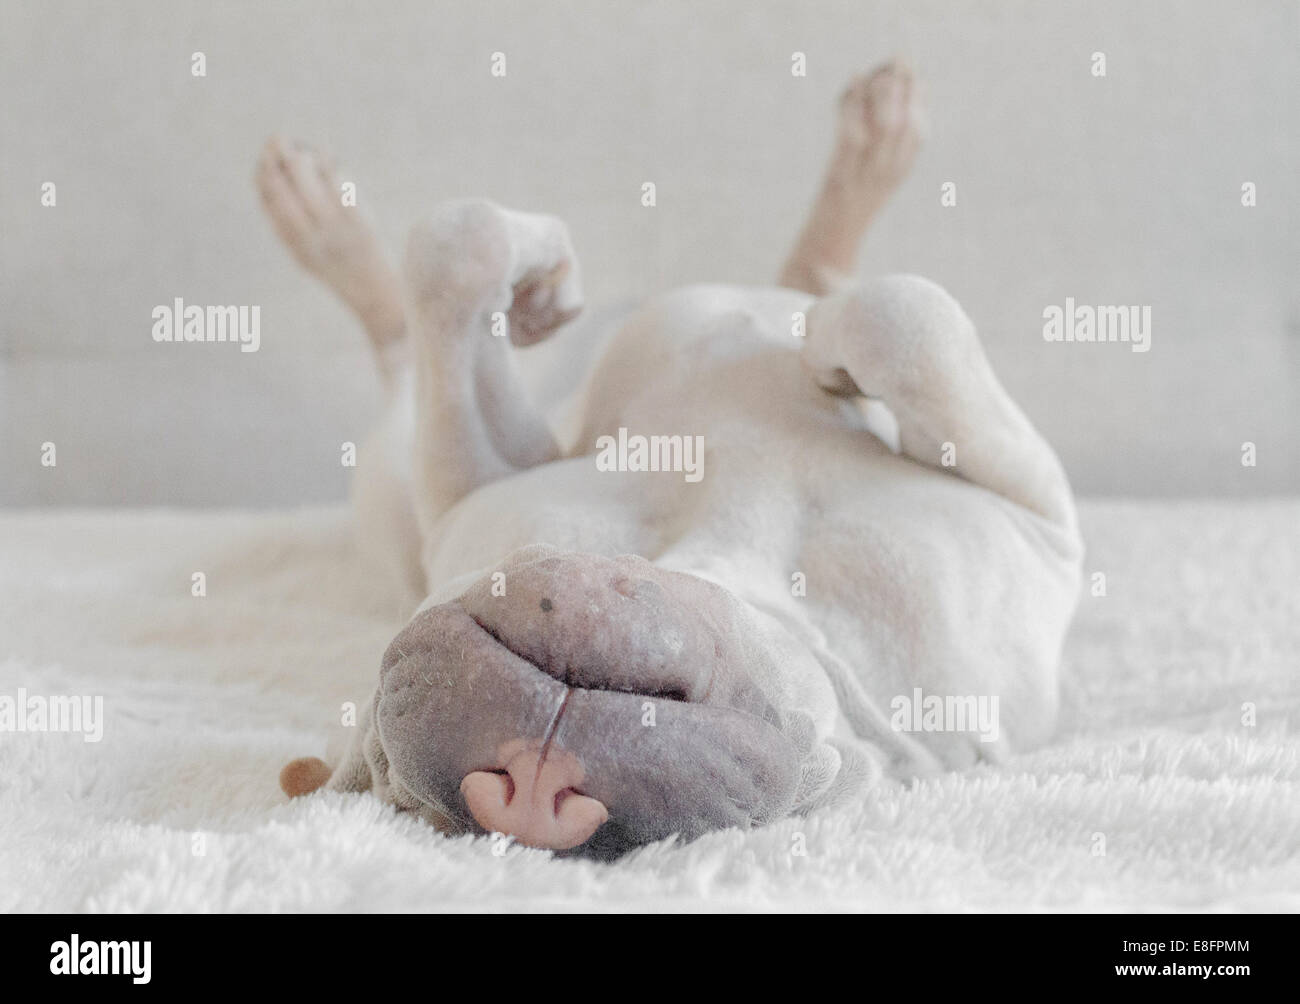 Puppy shar pei sleeping - Stock Image